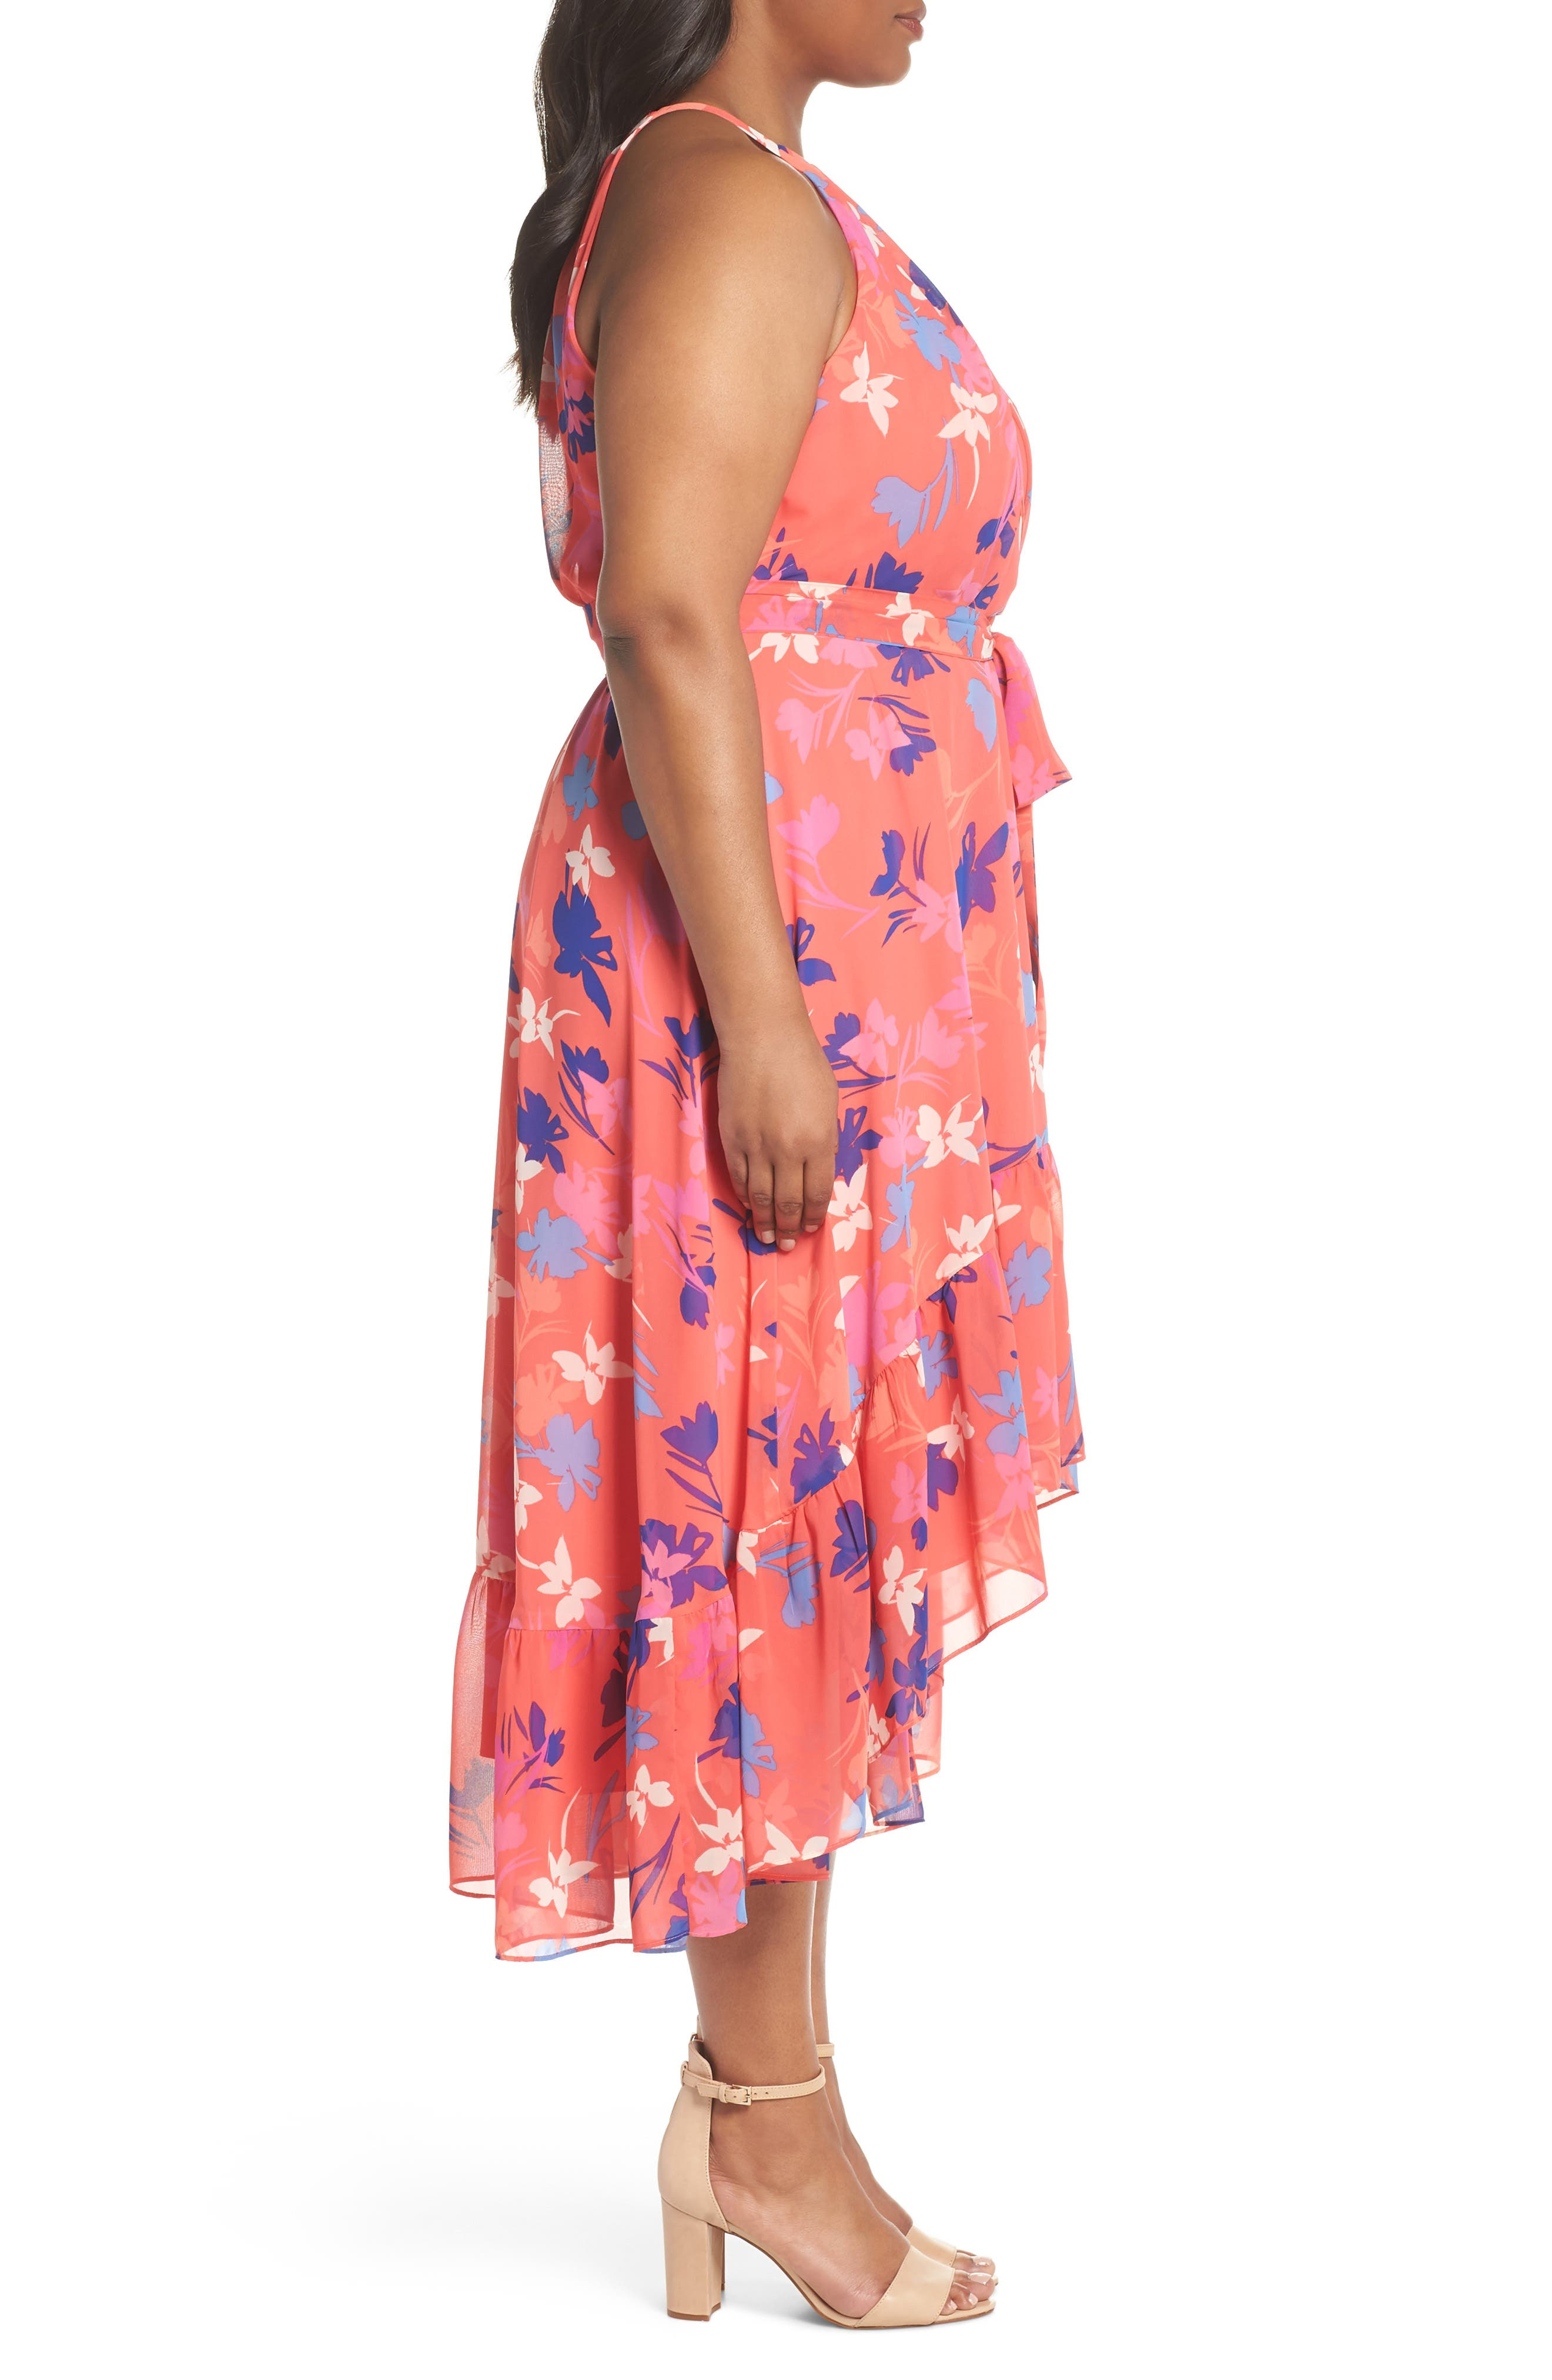 Floral High/Low Halter Dress,                             Alternate thumbnail 3, color,                             Coral/ Fiery Fuchsia/ Navy